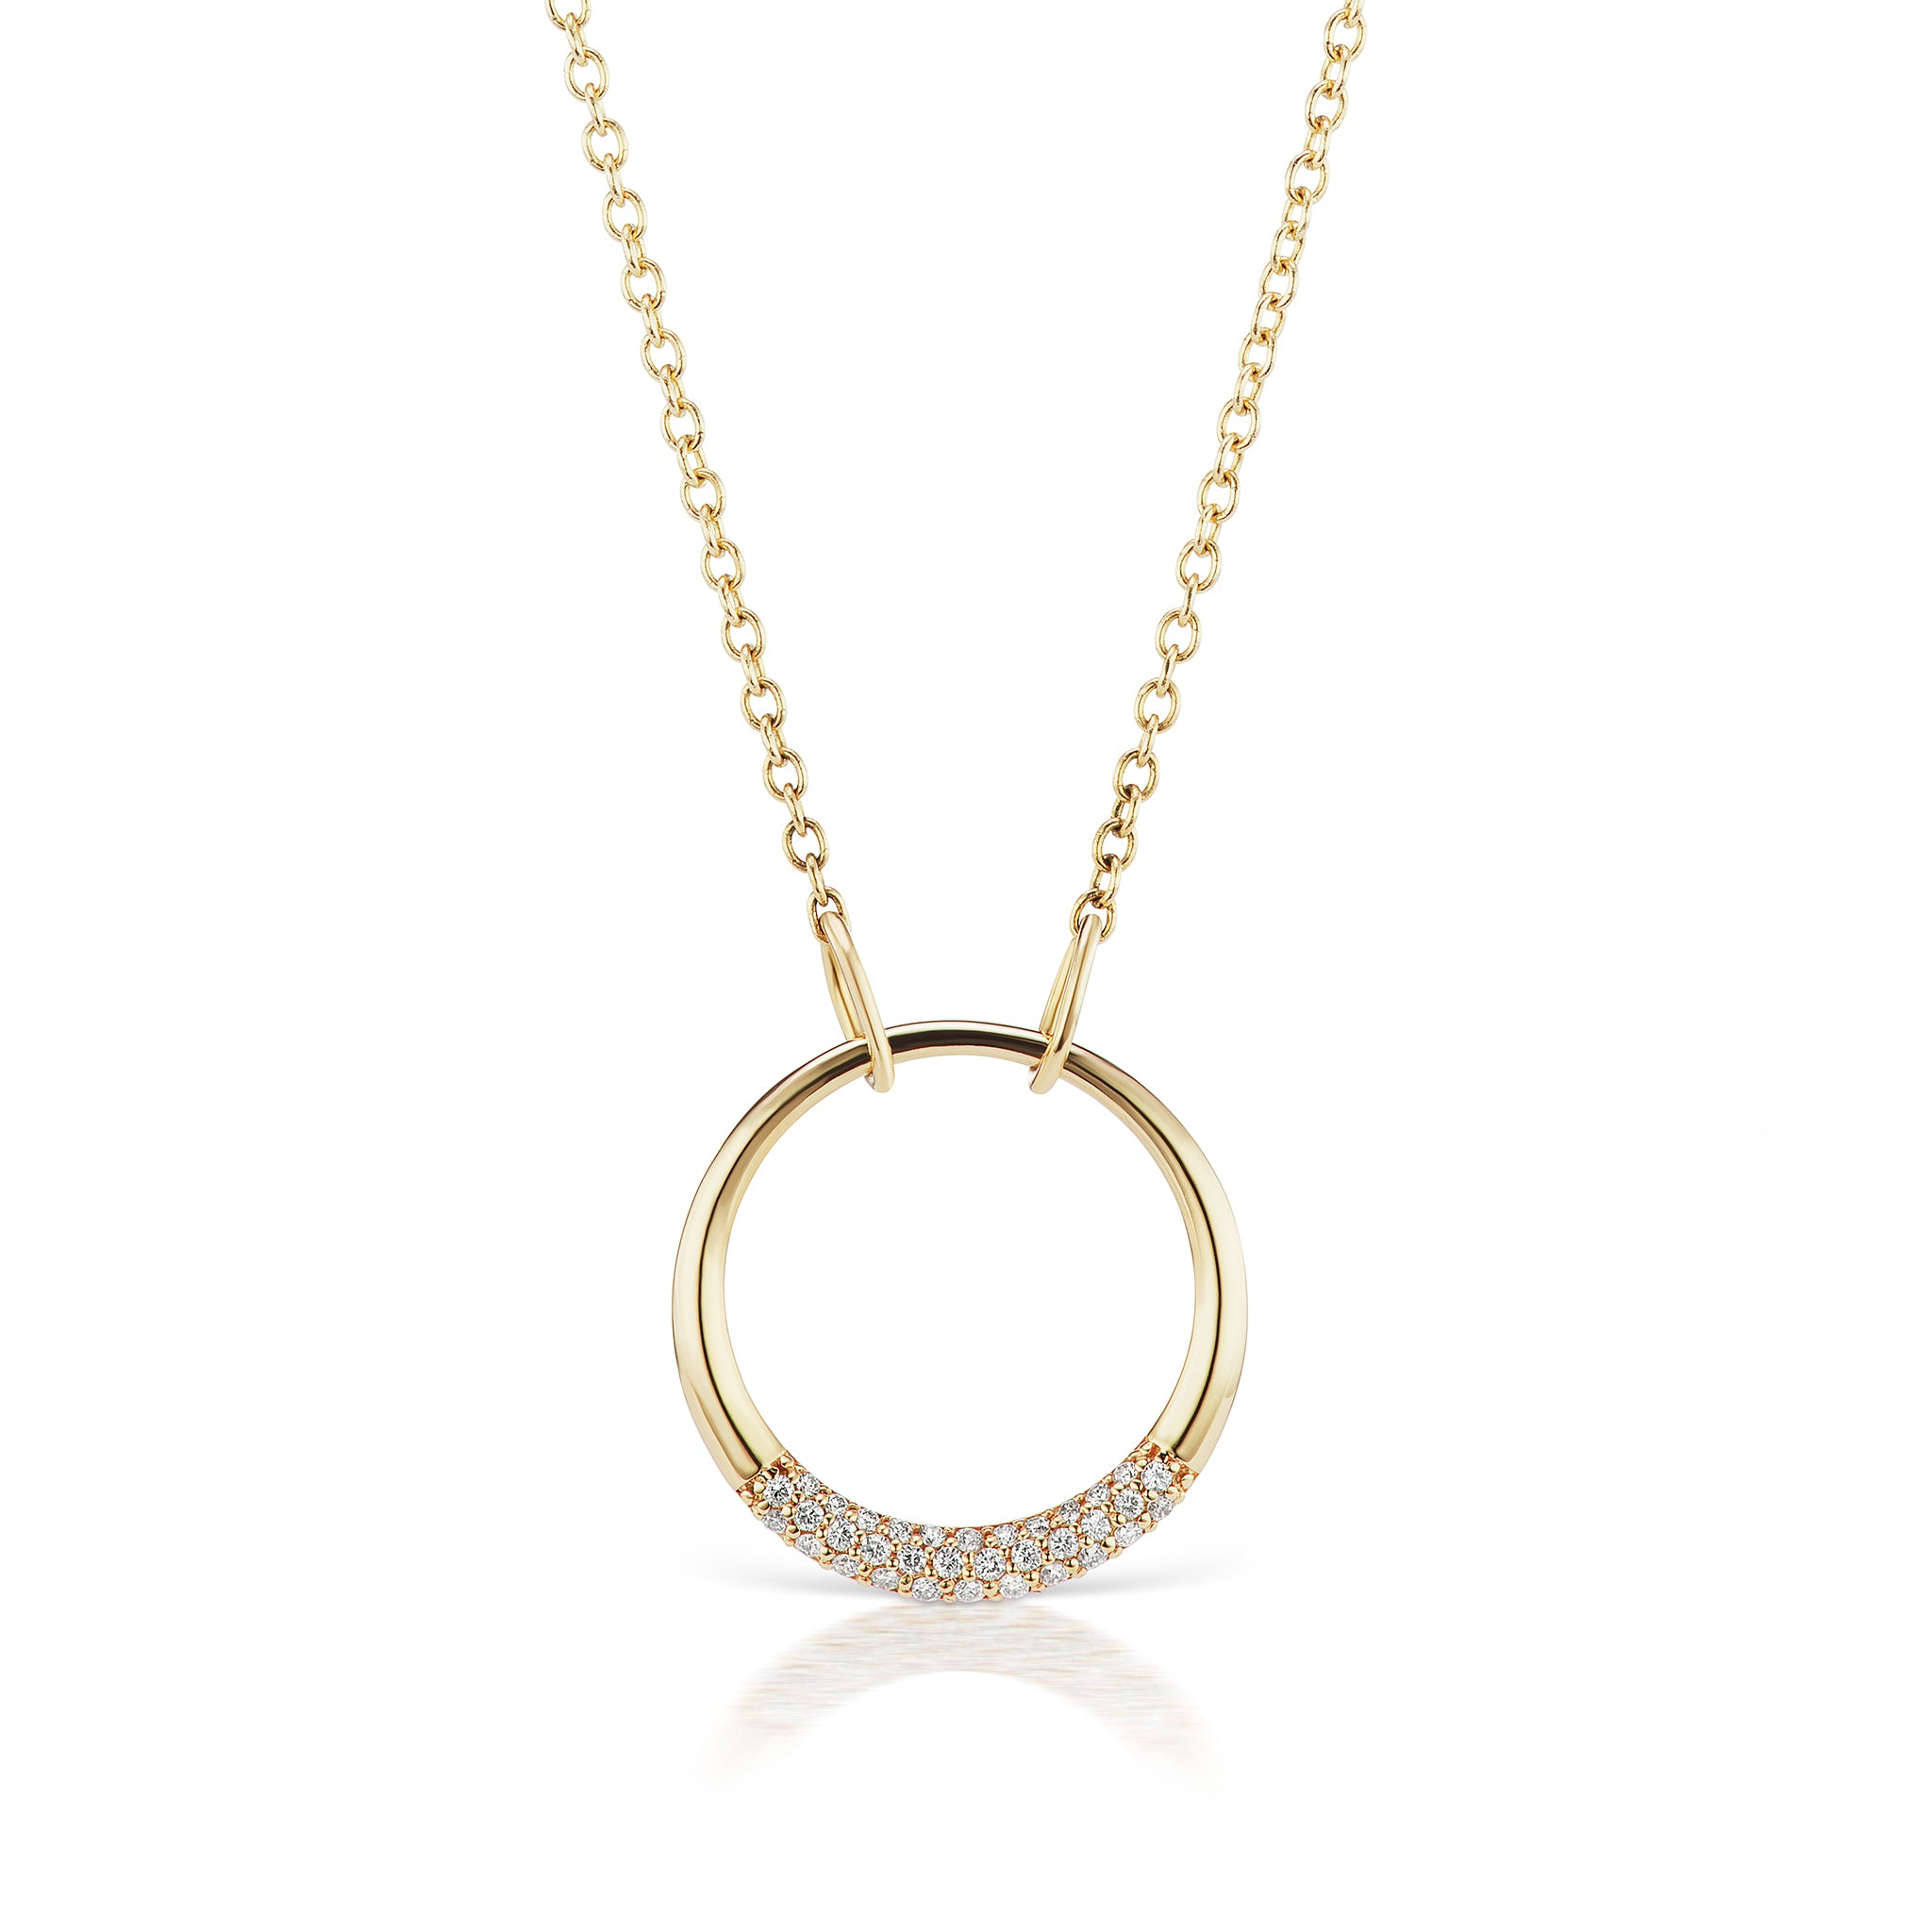 The Gold Petite Diamond Loop Necklace